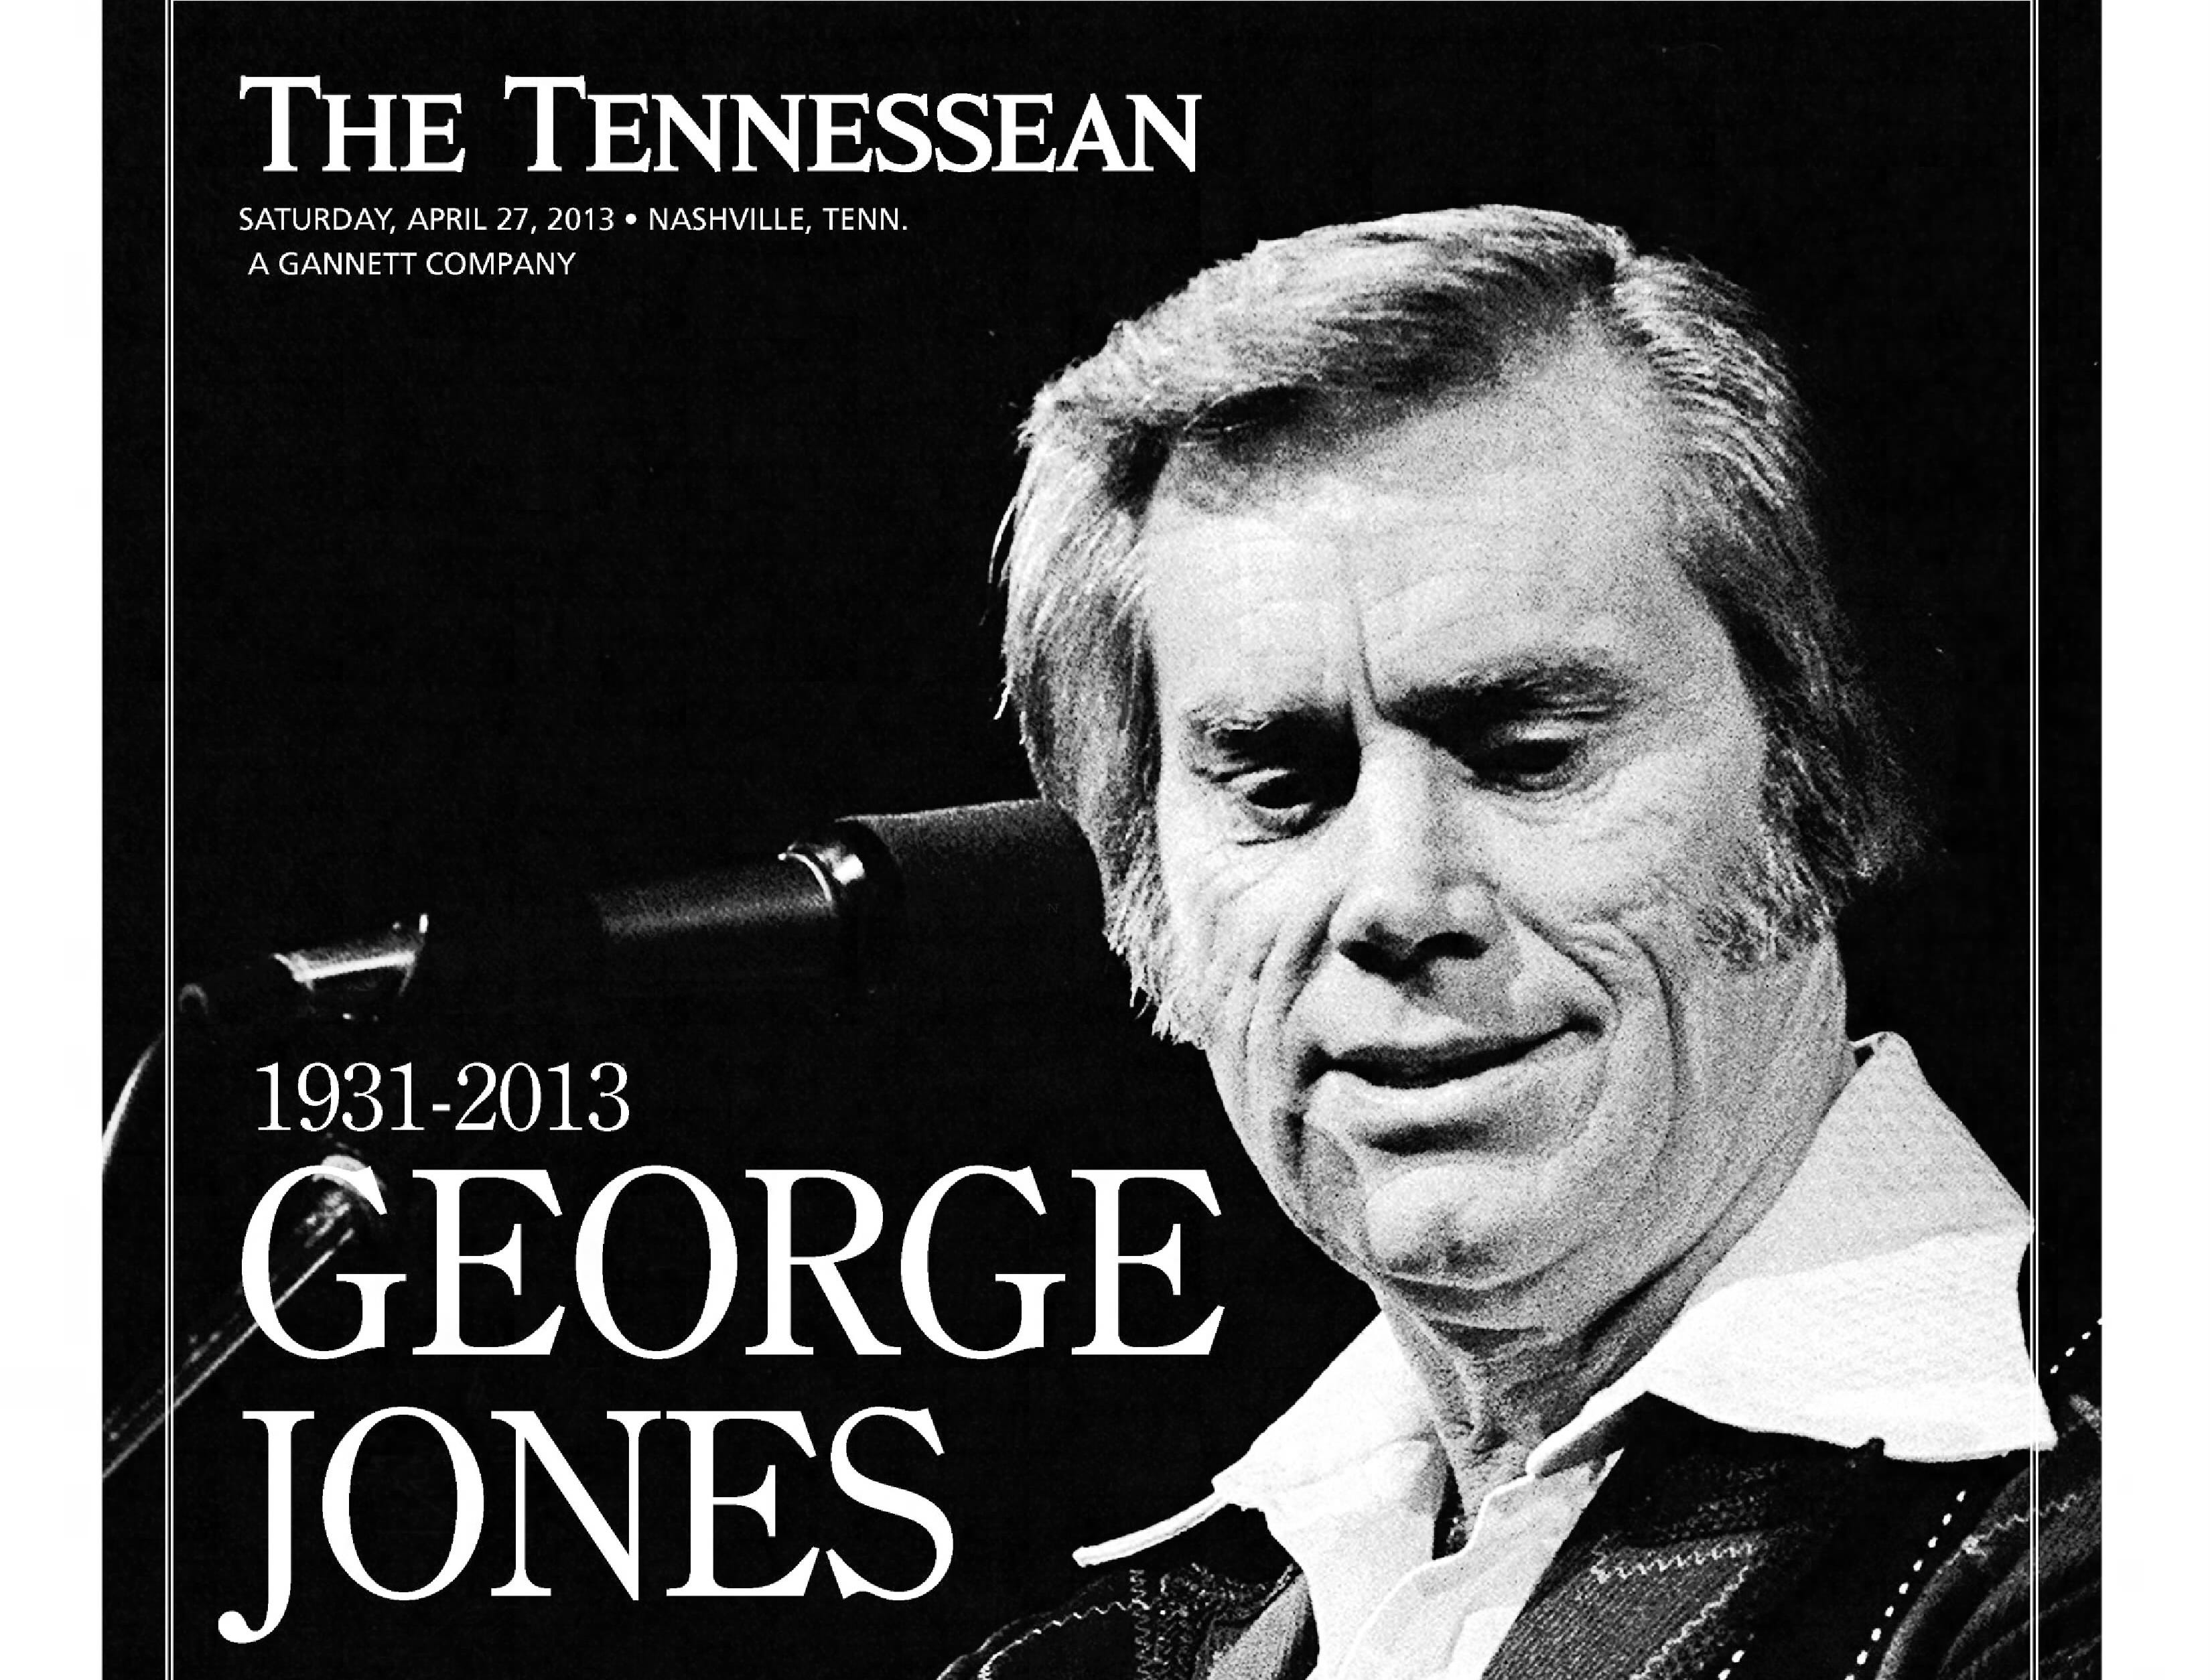 The front page of the April 27, 2013 of The Tennessean for the coverage of the death of George Jones.